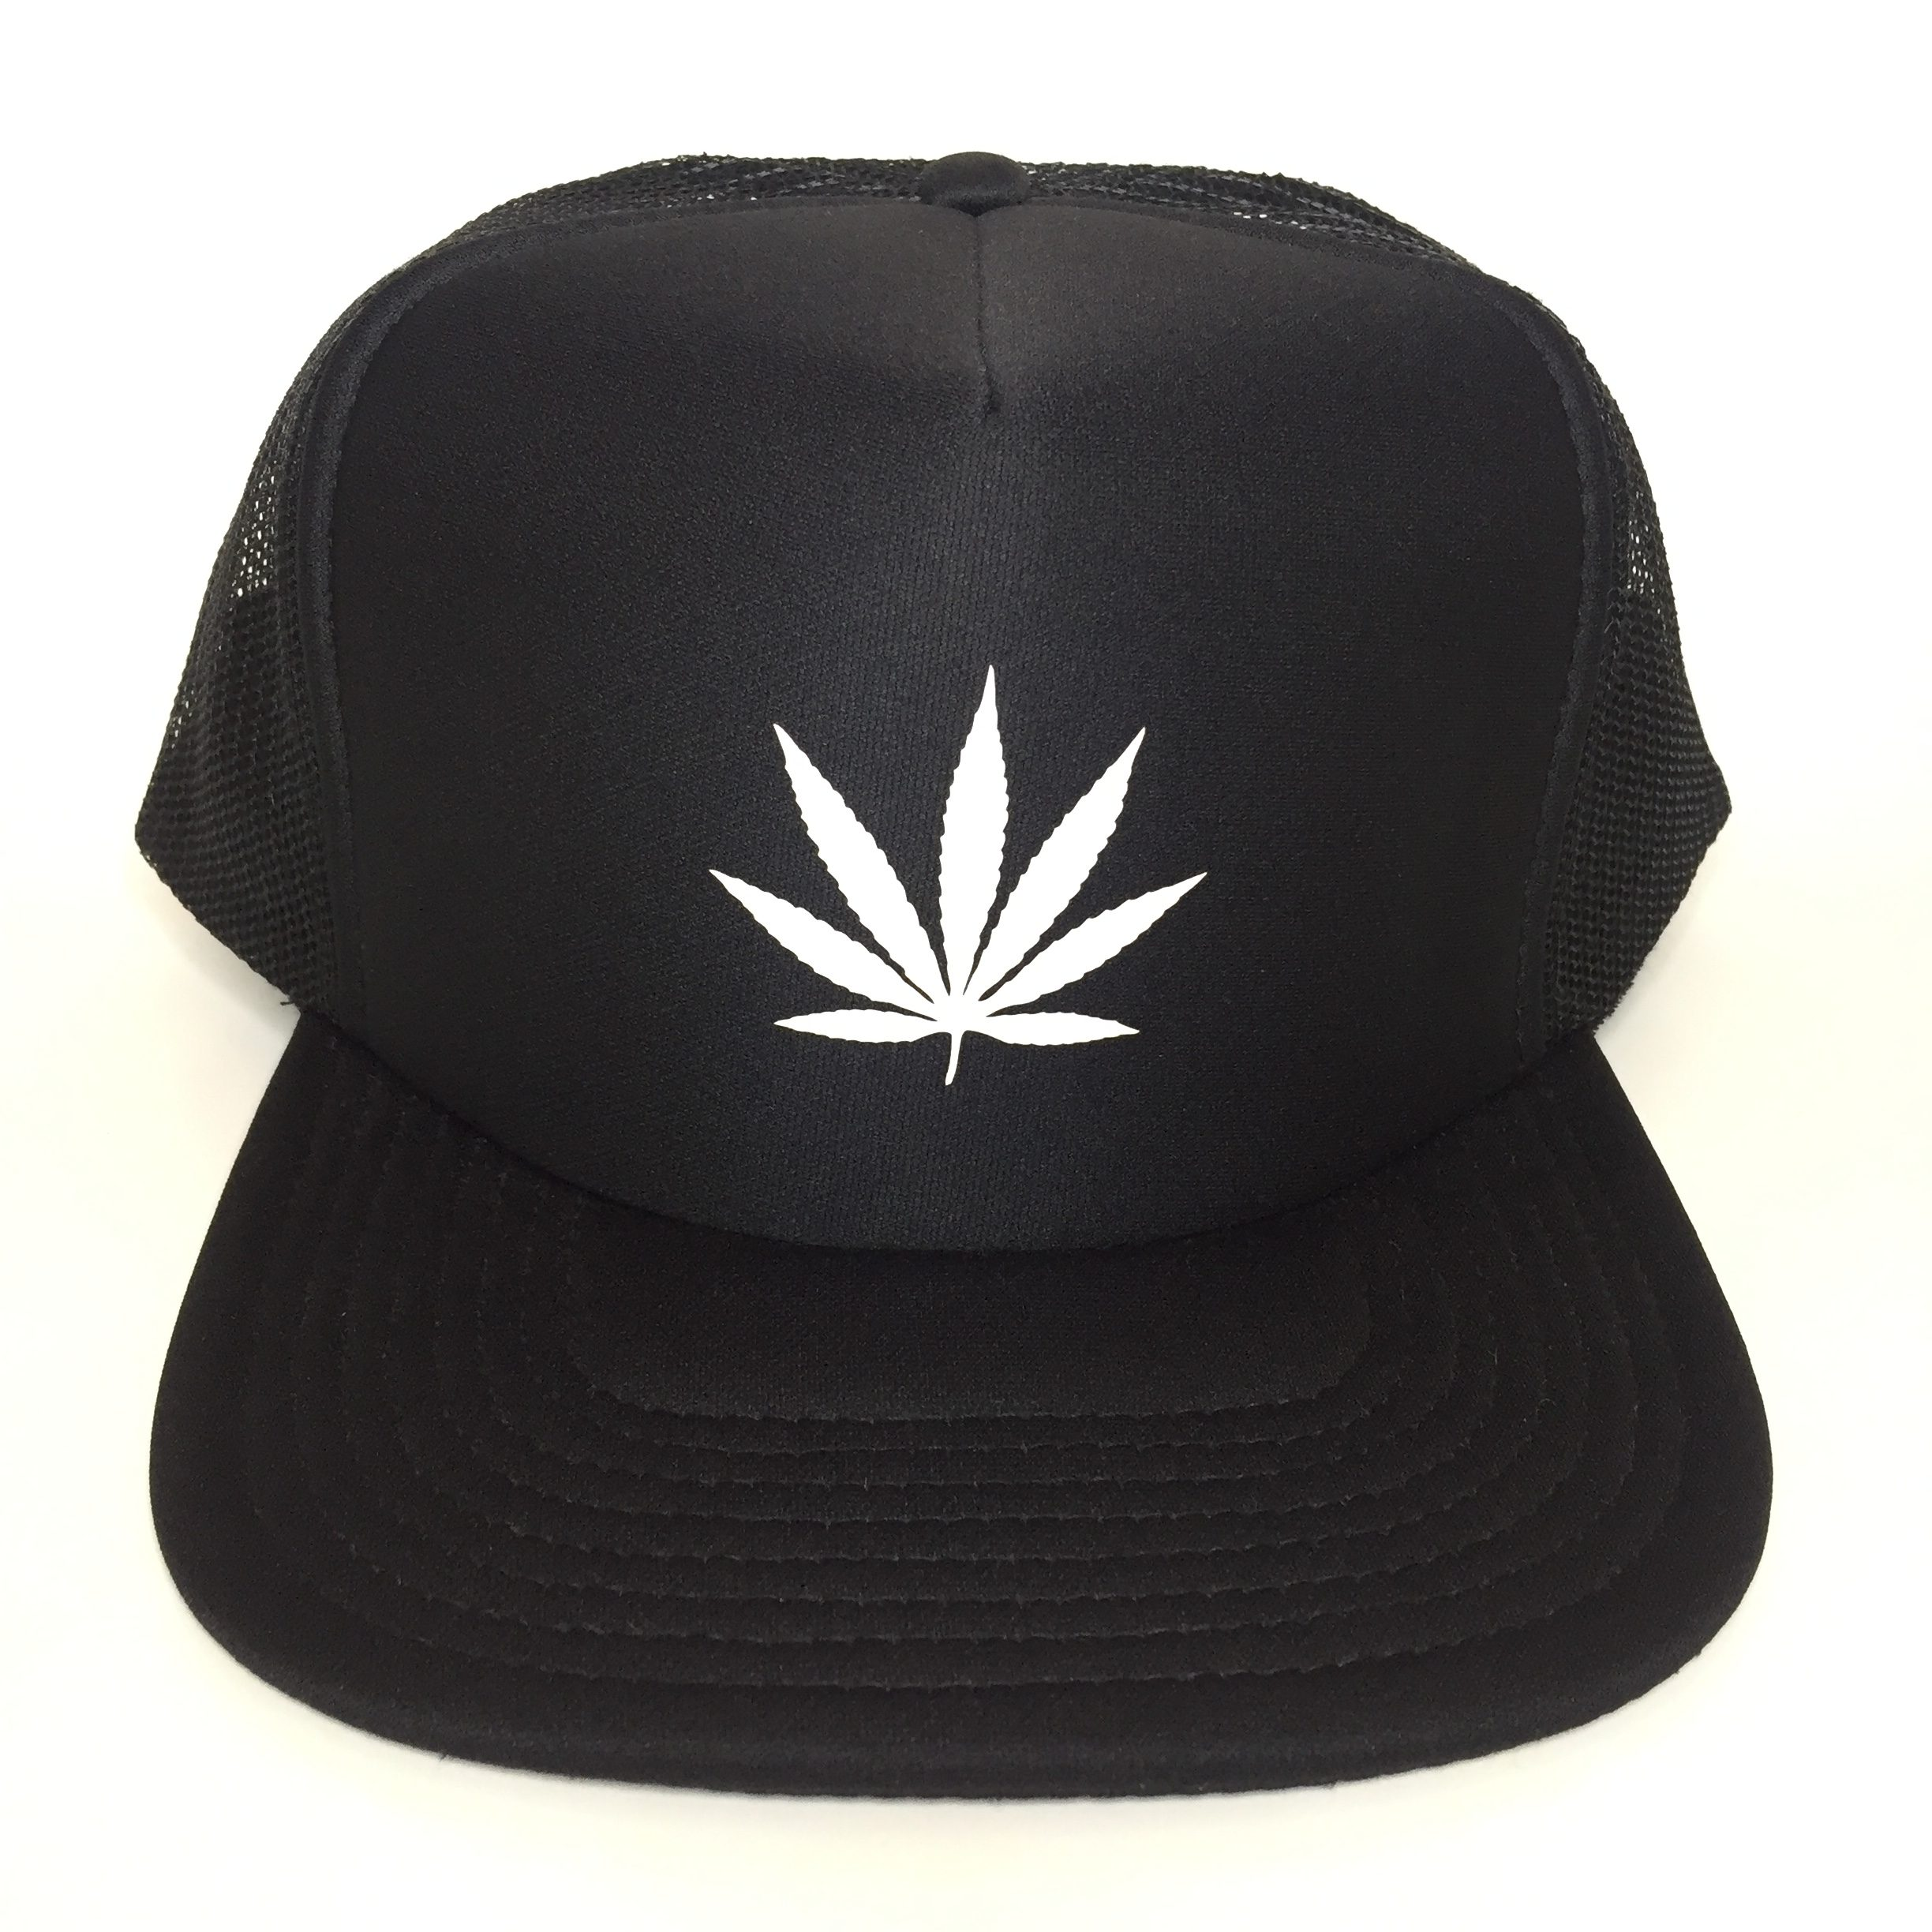 Weed Leaf Trucker Hat White on Black Front View